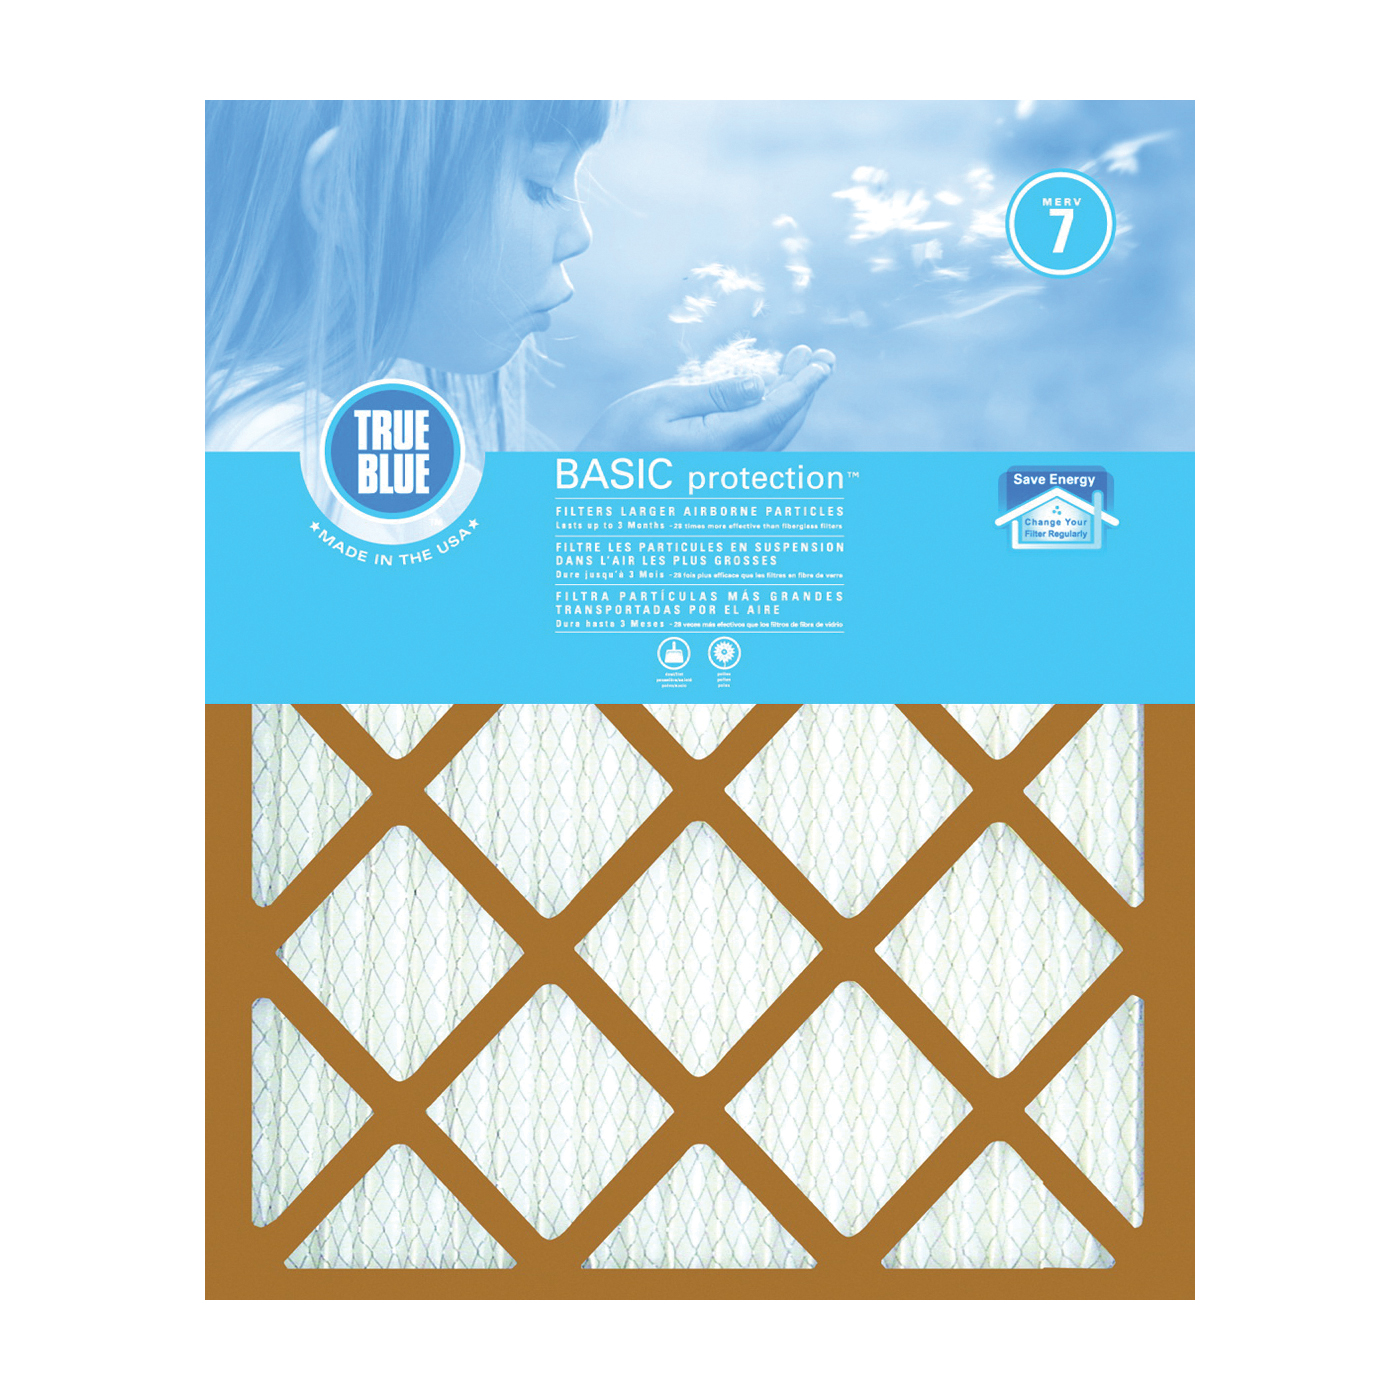 Picture of True Blue 212201 Air Filter, 20 in L, 12 in W, 7 MERV, 53.7 % Filter Efficiency, Synthetic Pleated Filter Media